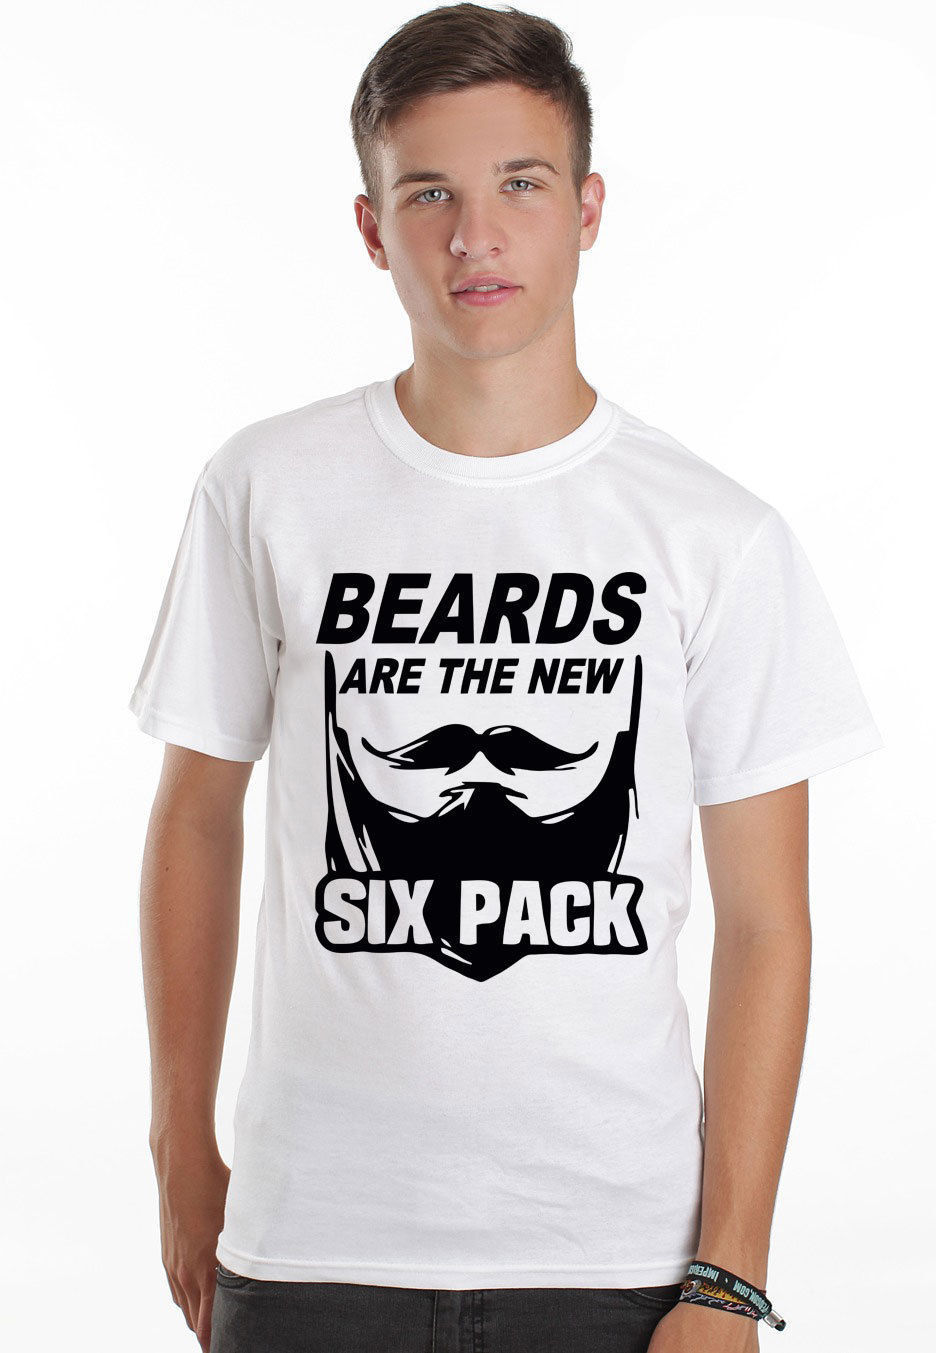 2019 Hot Sale 100% cotton beards are the new six pack muscle funny mens barber <font><b>shave</b></font> full colour t <font><b>shirt</b></font> Tee <font><b>shirt</b></font> image